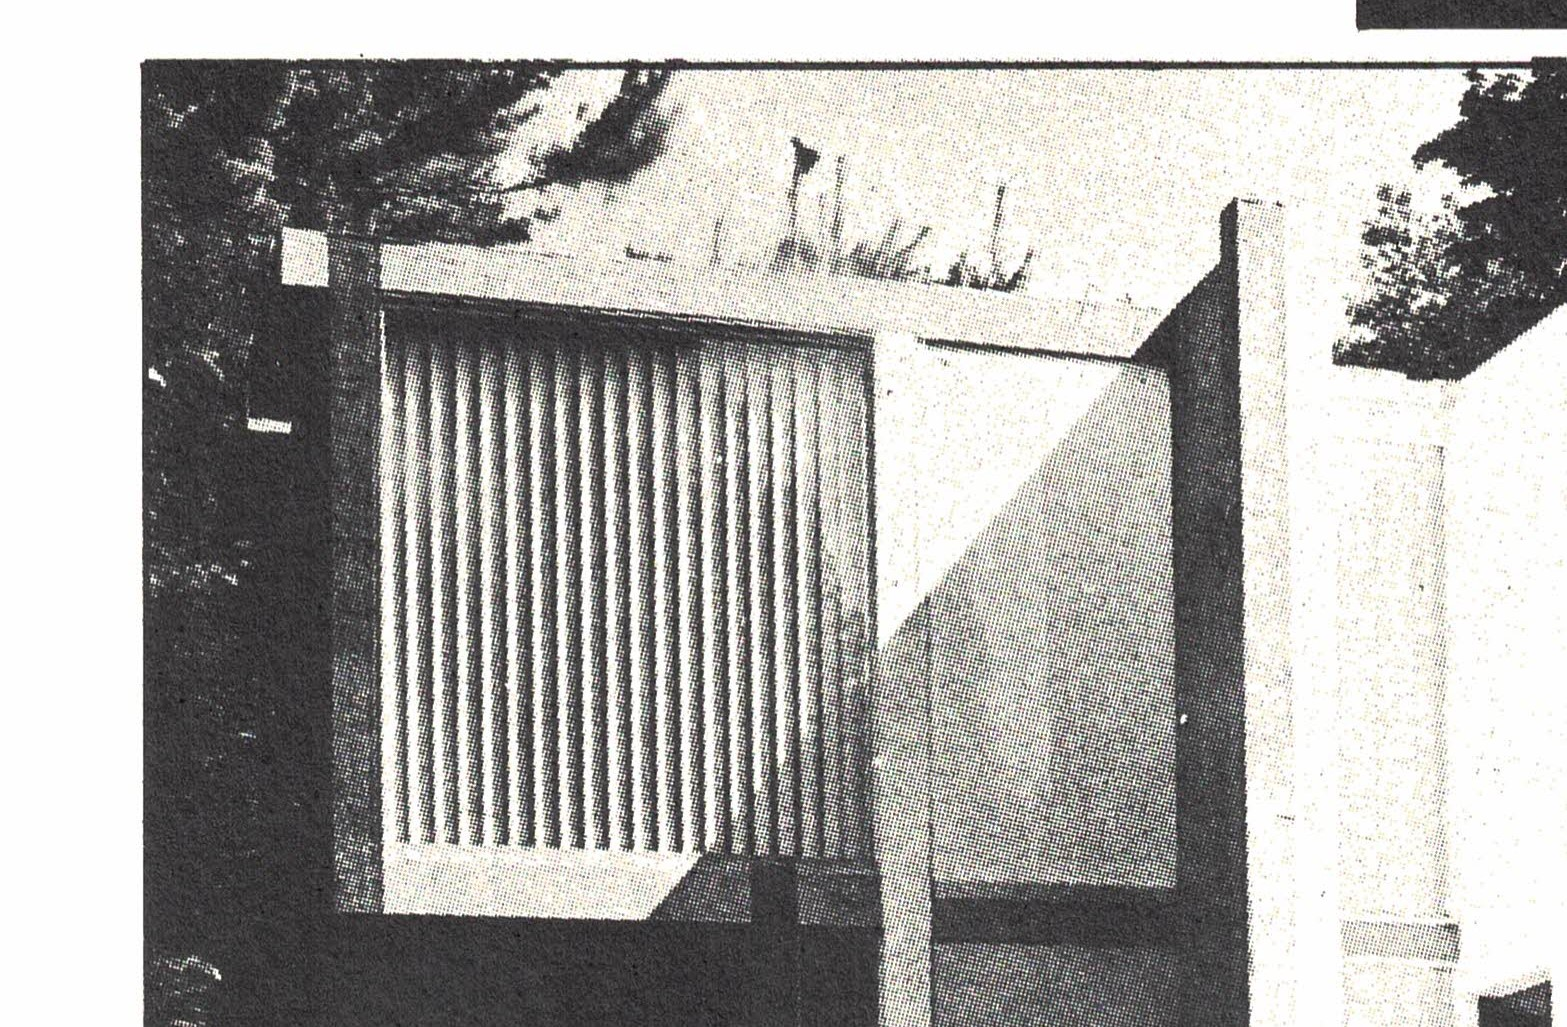 Figura 19. Eiseman, Casa VI, Washington, 1975